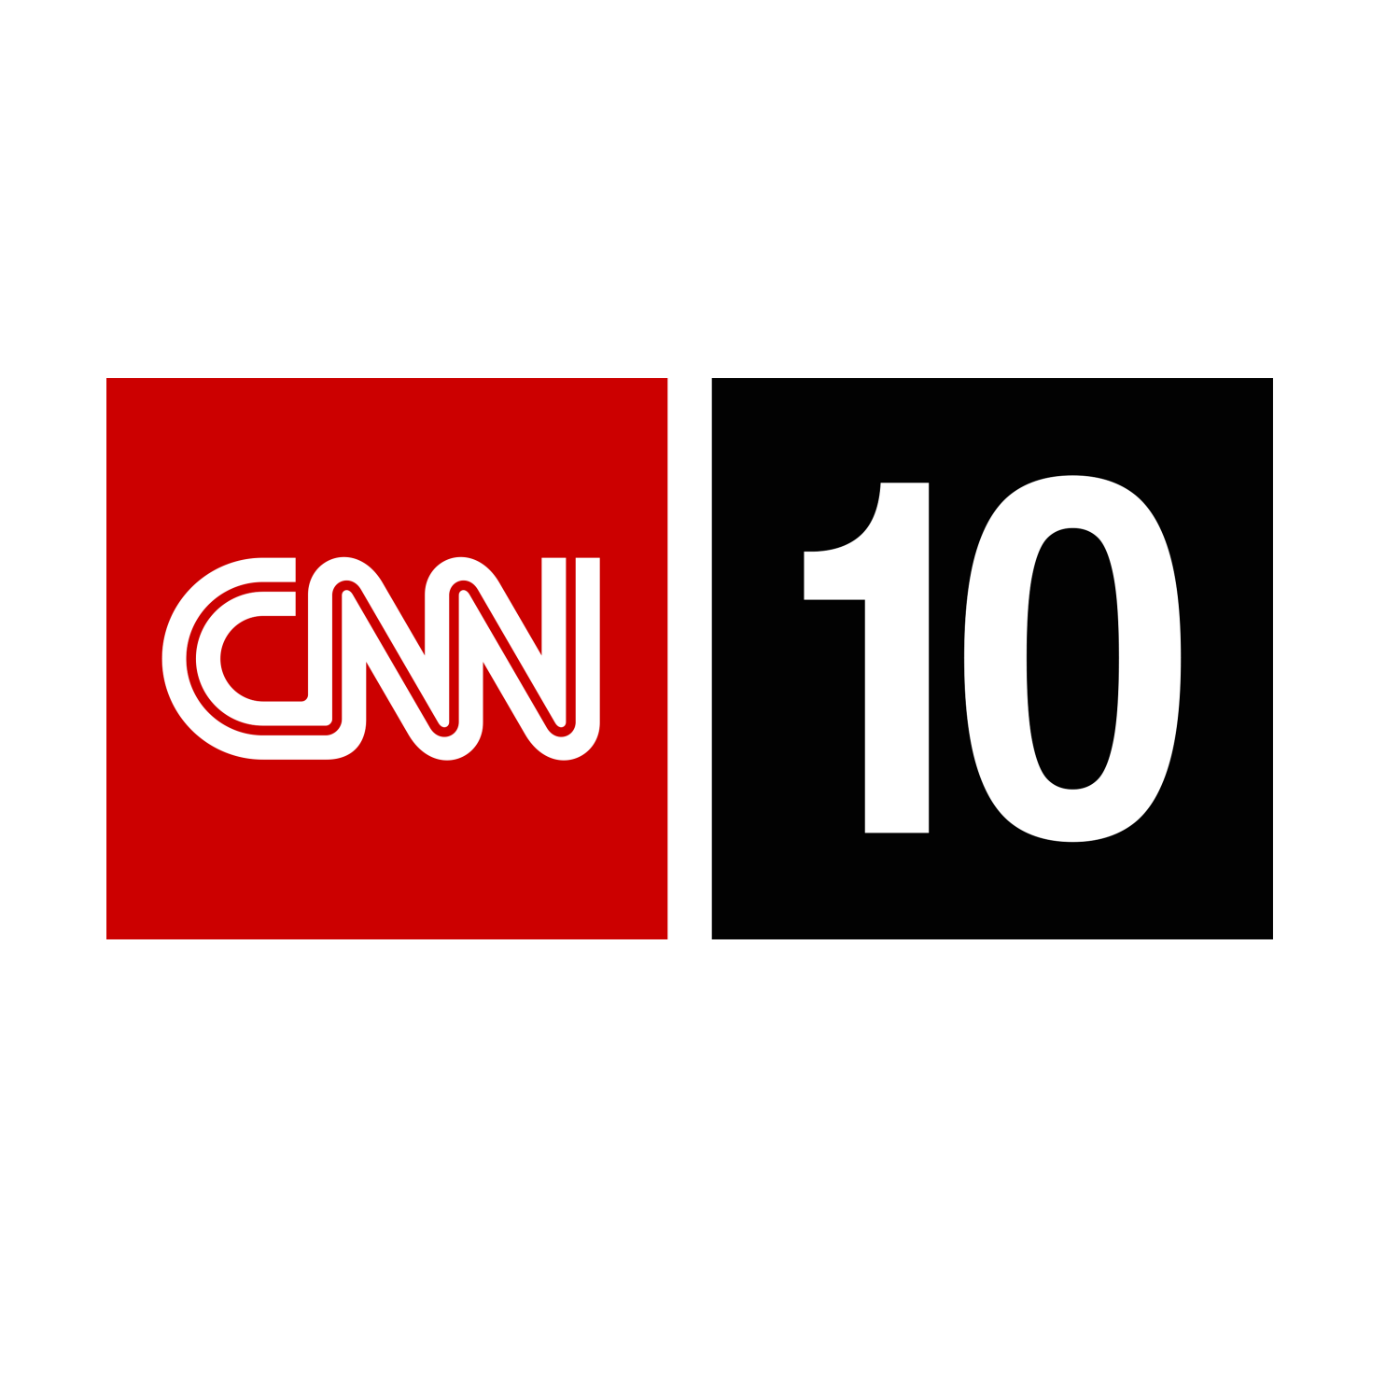 CNN Student News - March 12, 2013